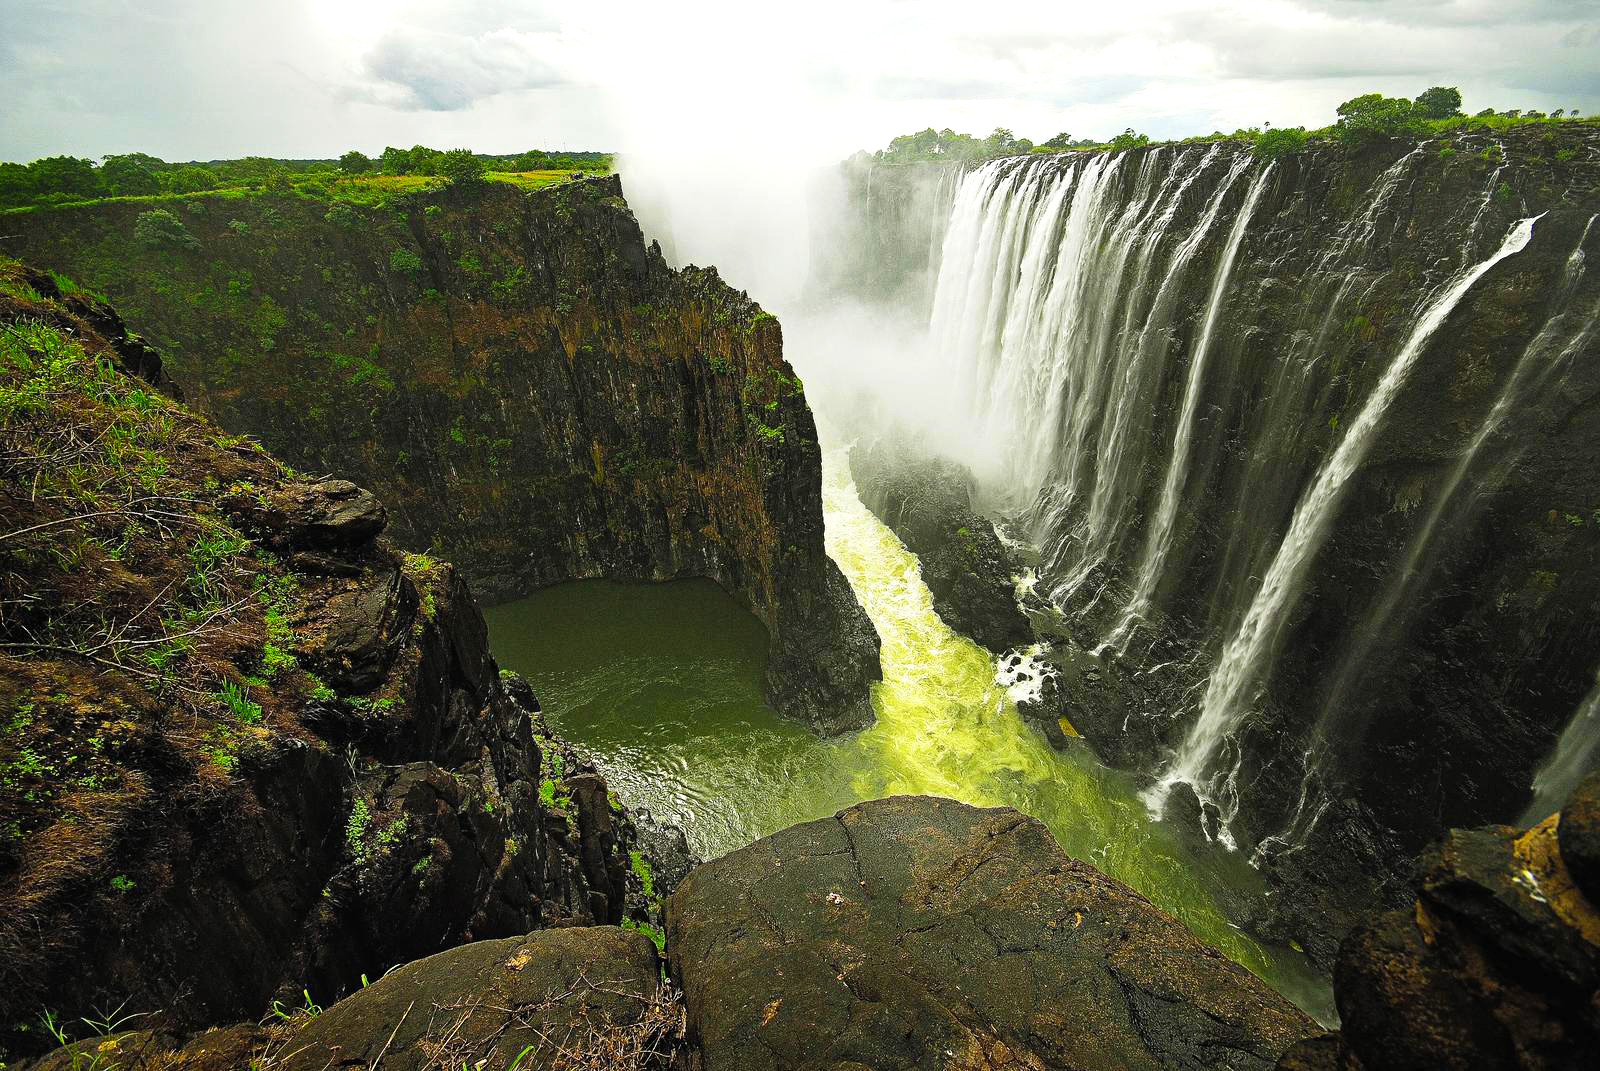 10 of the most beautiful waterfalls in the world